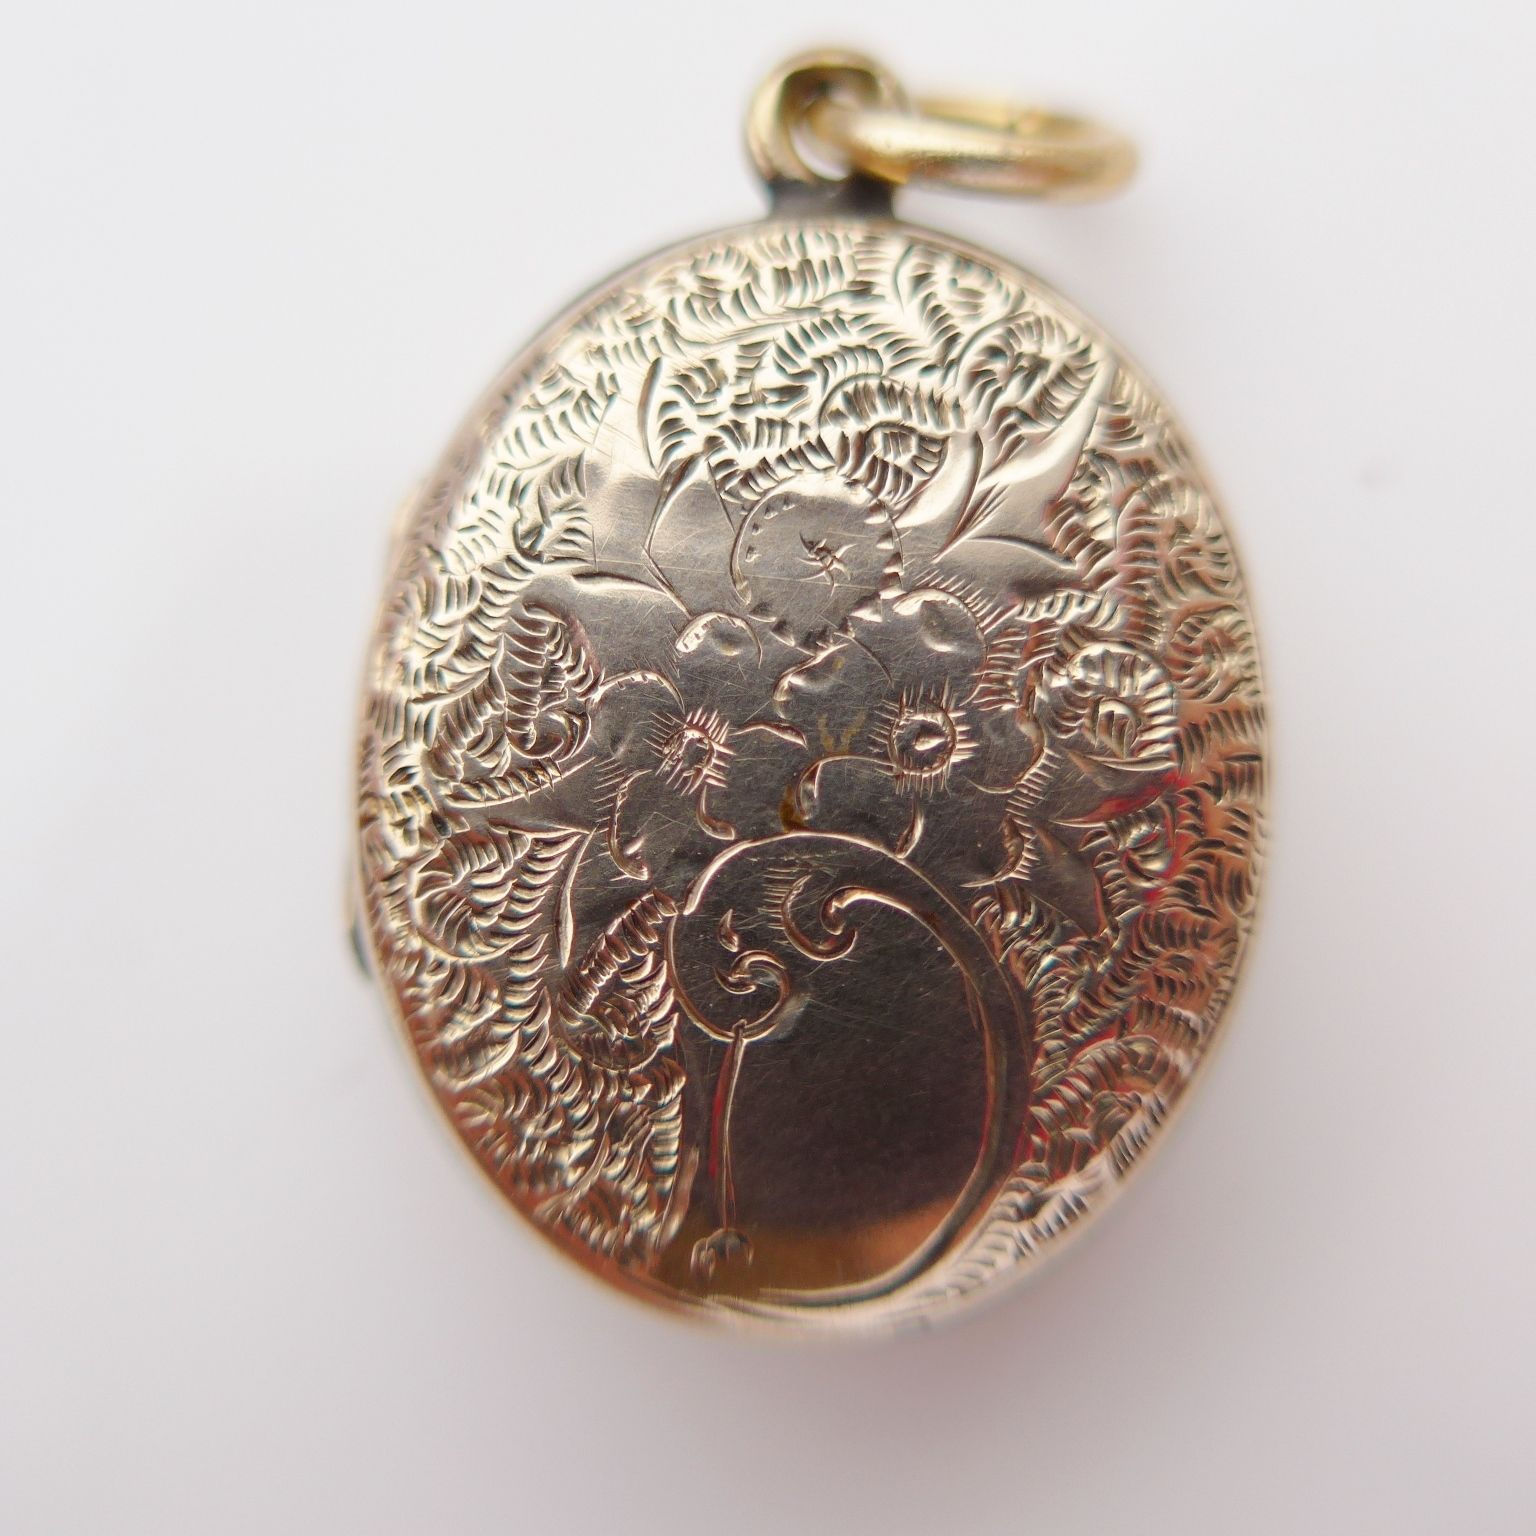 picture metal round necklace locket lockets hinged personalized plain simple gold medium gift pin charm